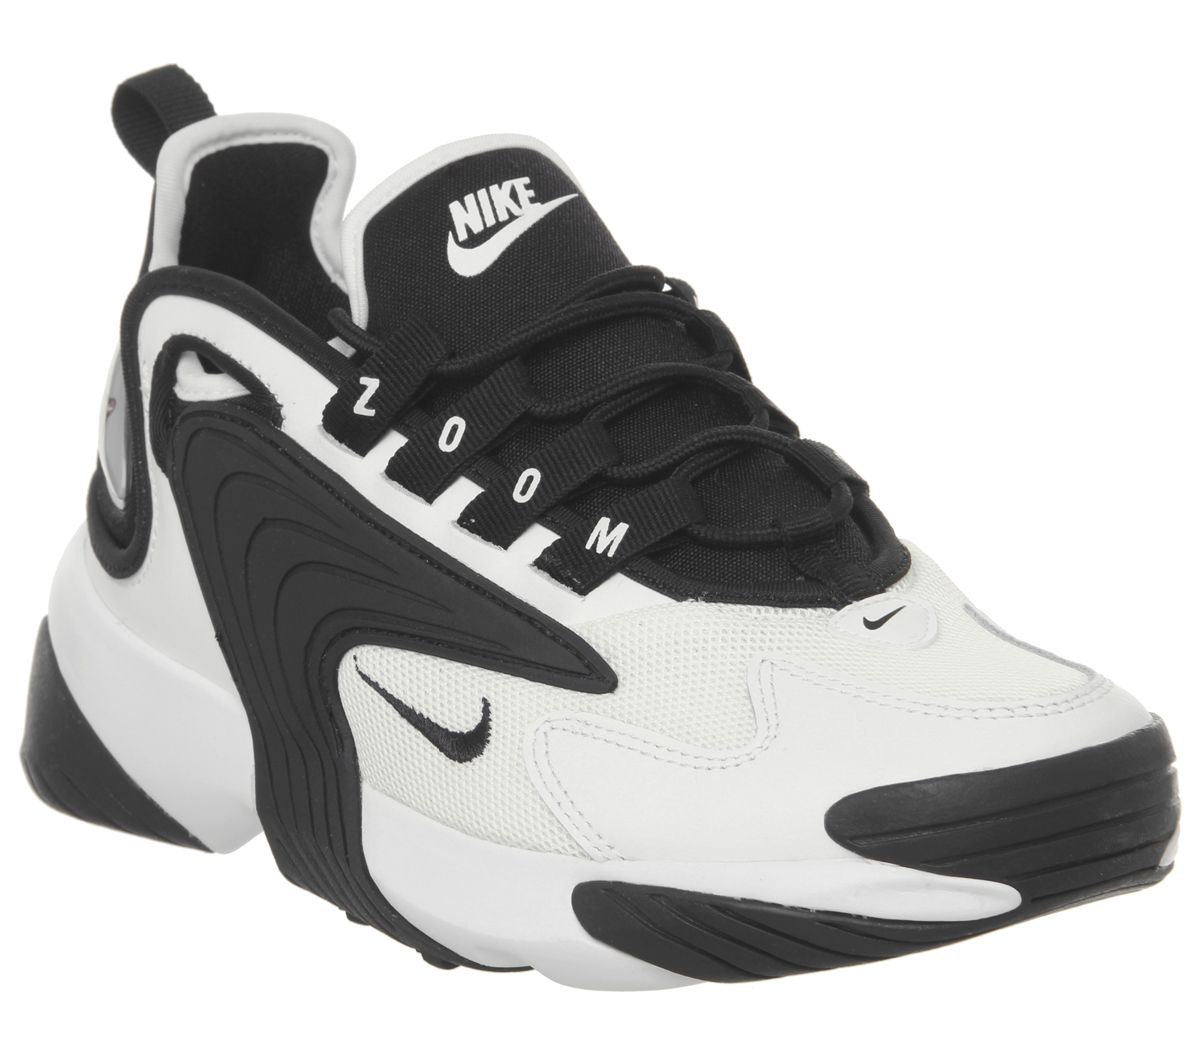 buy popular dc3d8 fa1b3 Nike Zoom 2K Trainers White Black F - Hers trainers